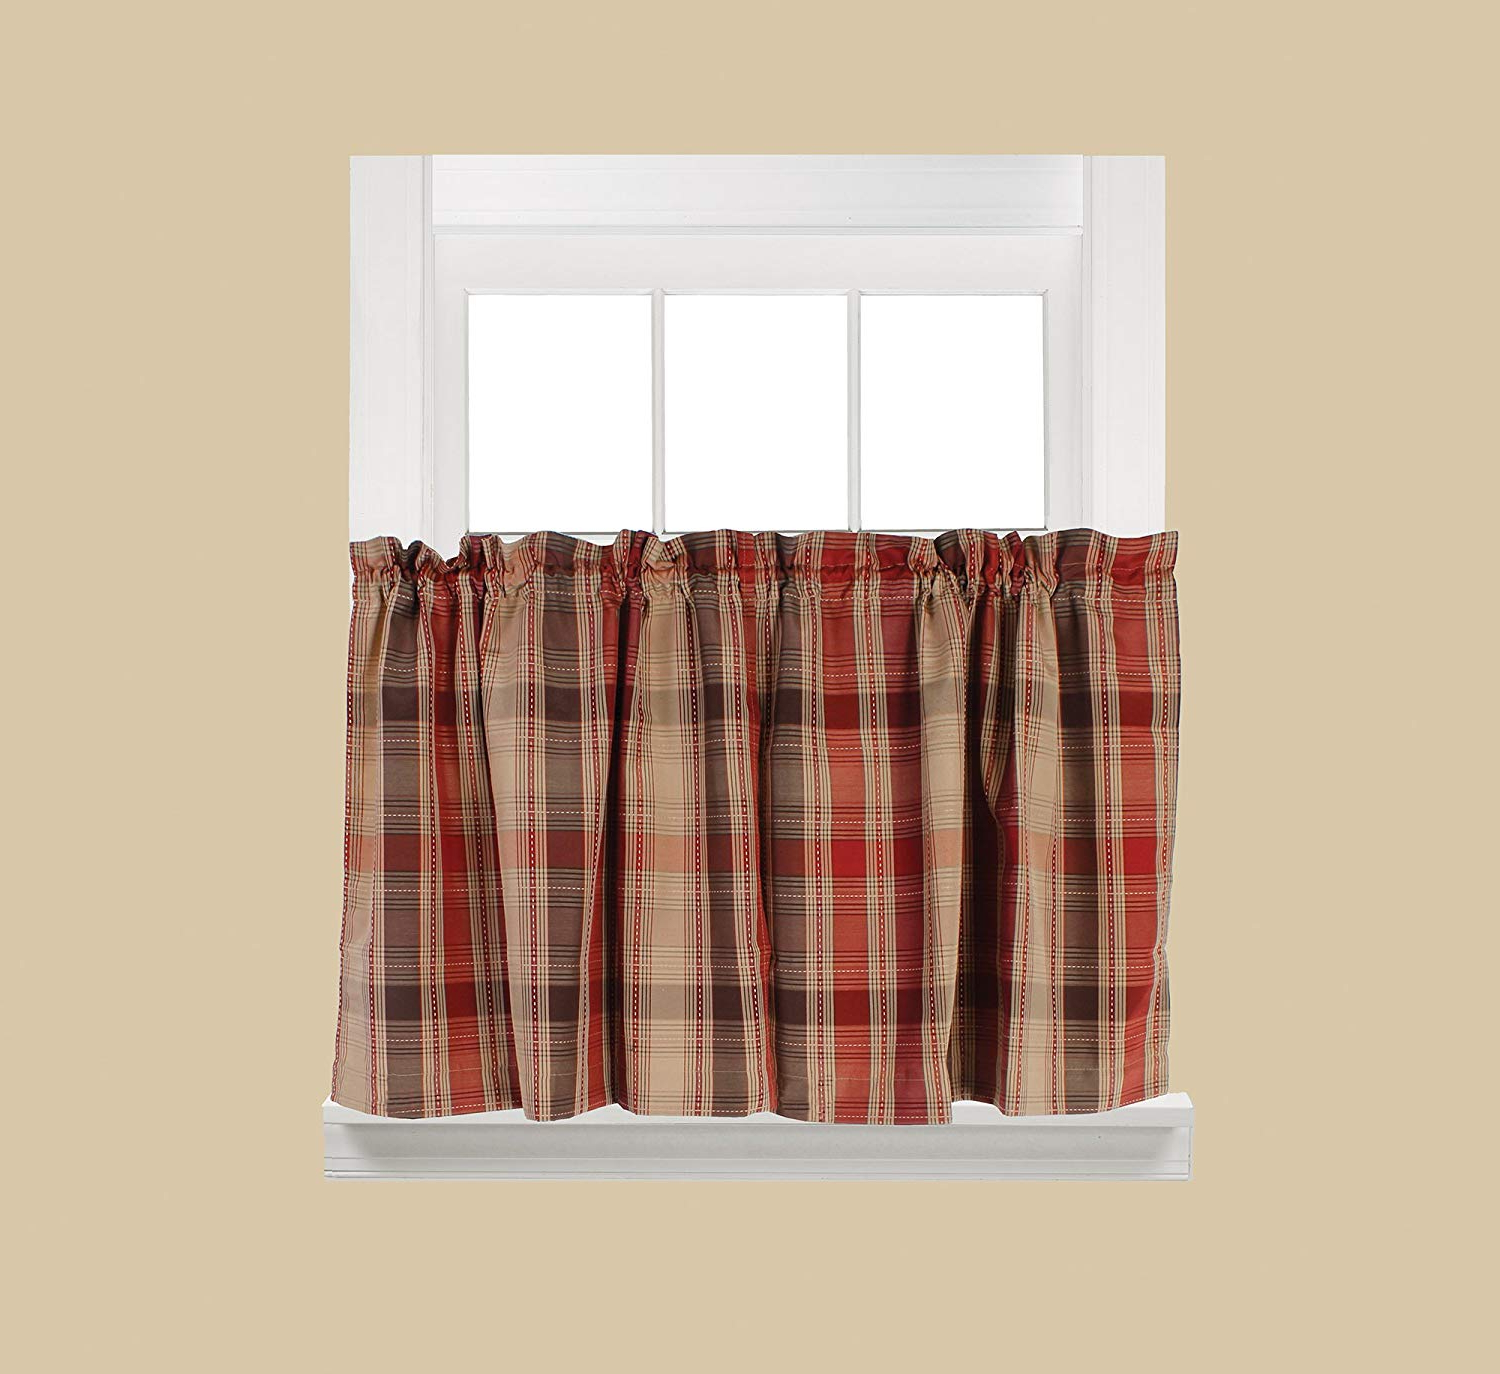 Latest Tranquility Curtain Tier Pairs Pertaining To Amazon: Skl Homesaturday Knight Ltd. Cooper Tier (Gallery 5 of 20)